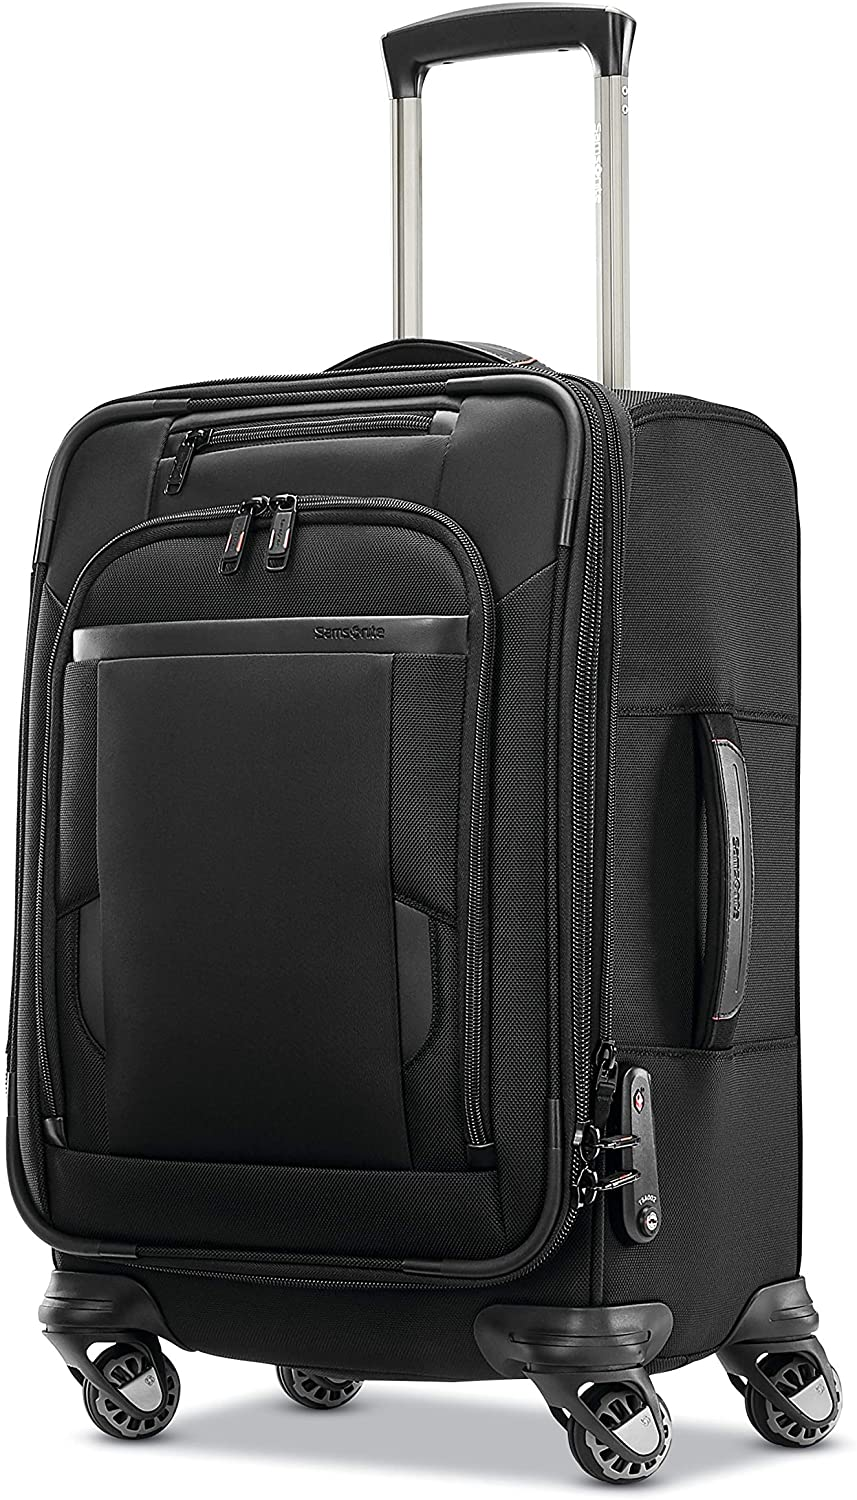 Samsonite Pro Travel Softside Expandable Luggage with Spinner Wheels, Black, Carry-On 21-Inch